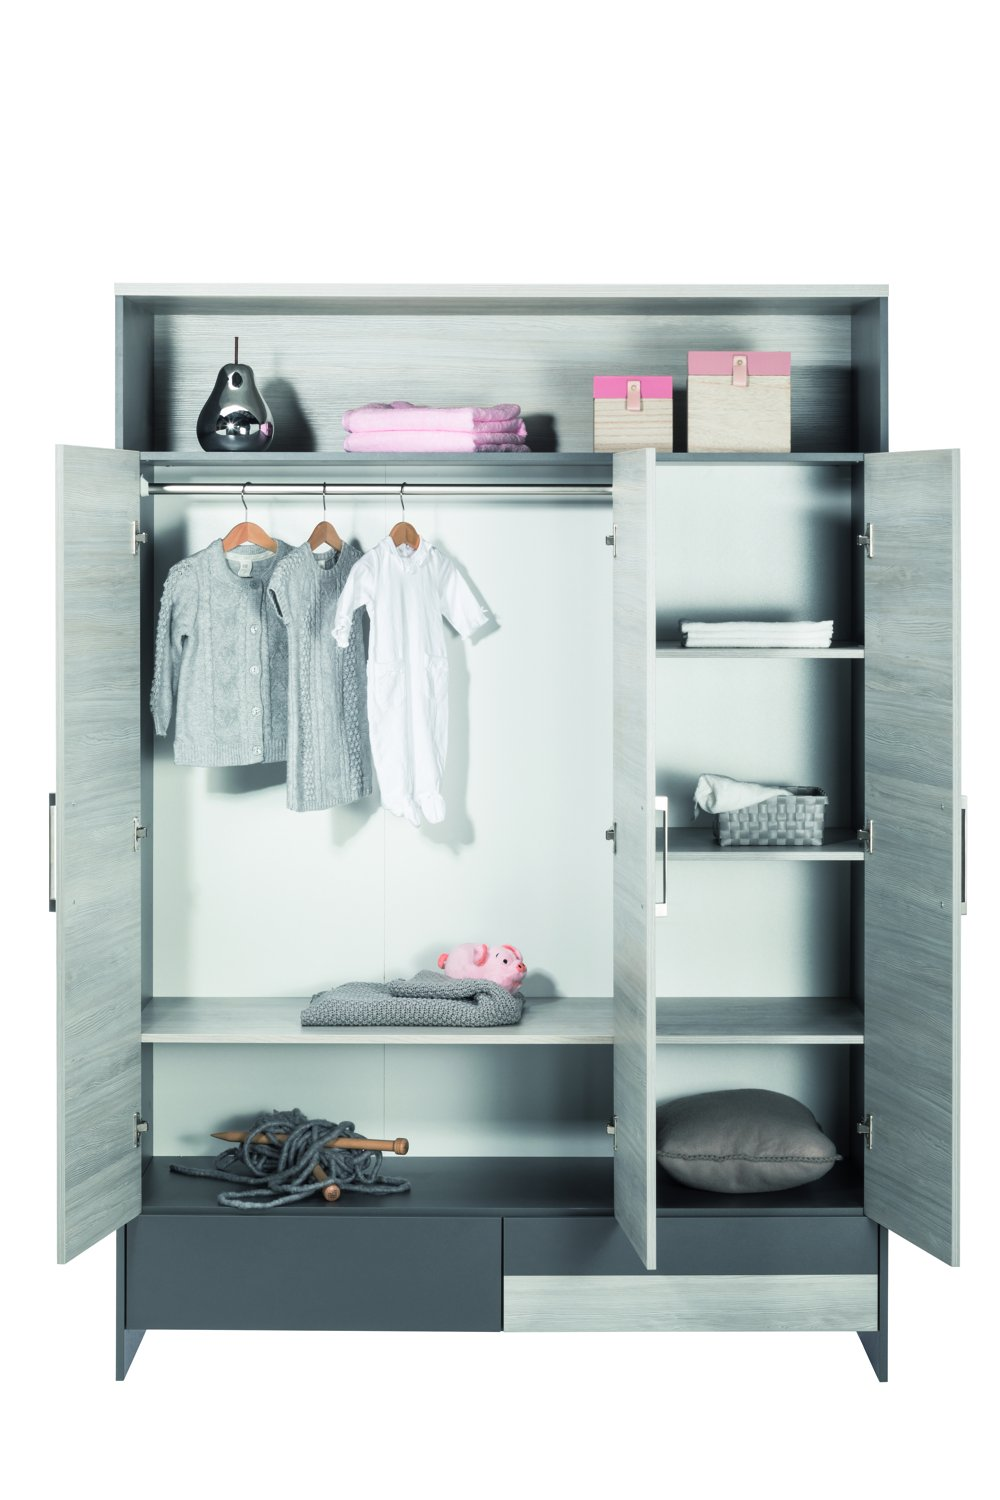 Schardt 06 951 23 Cupboard with 3 Doors, Highlight Grey  GEORG SCHARDT KG - DROPSHIP